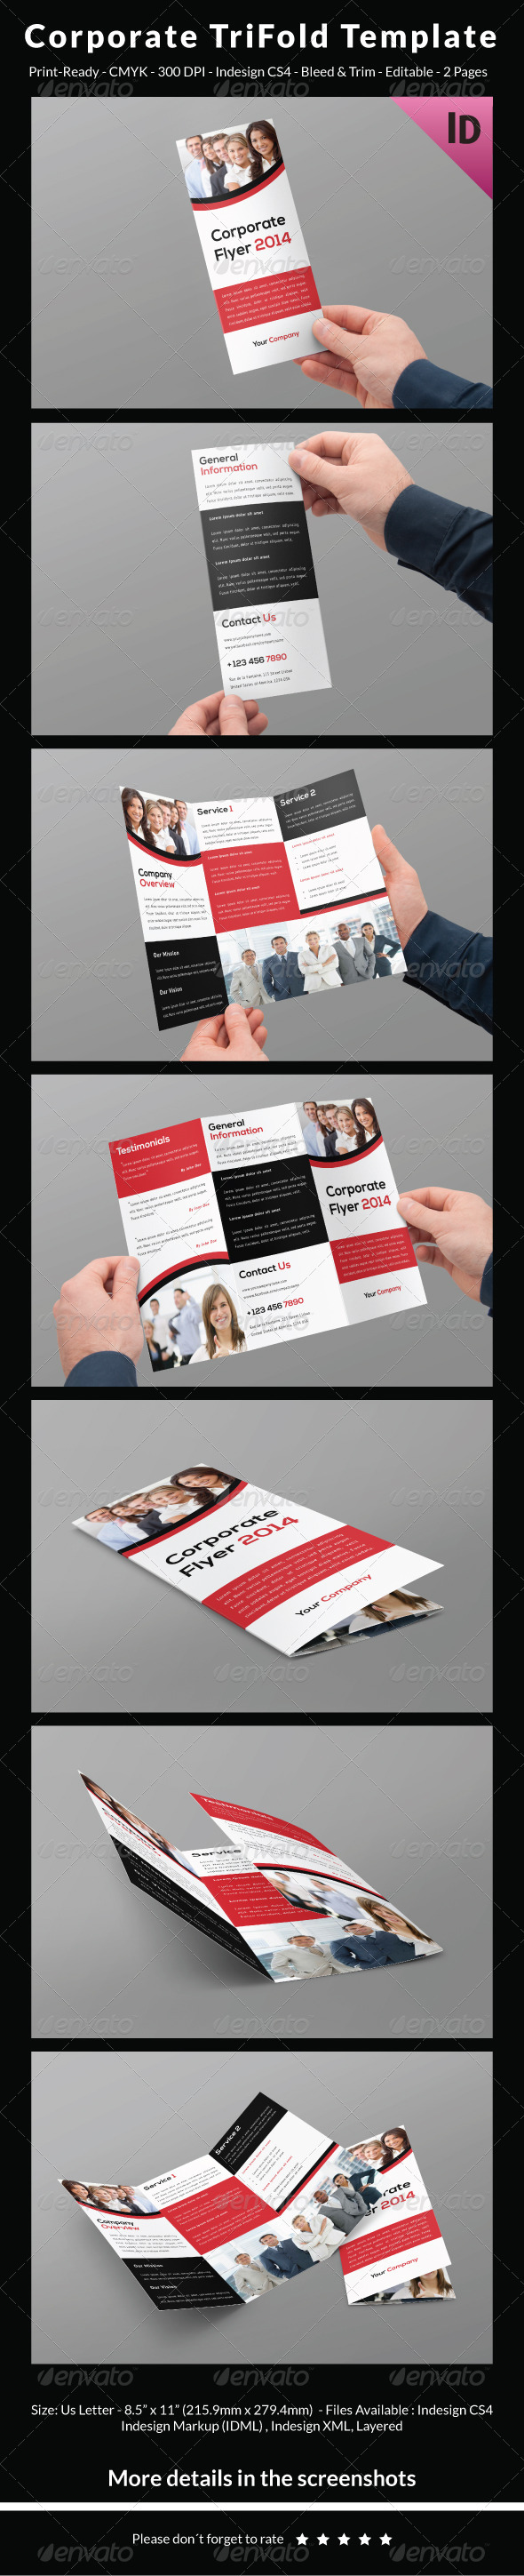 Corporate Trifold Template - Corporate Brochures